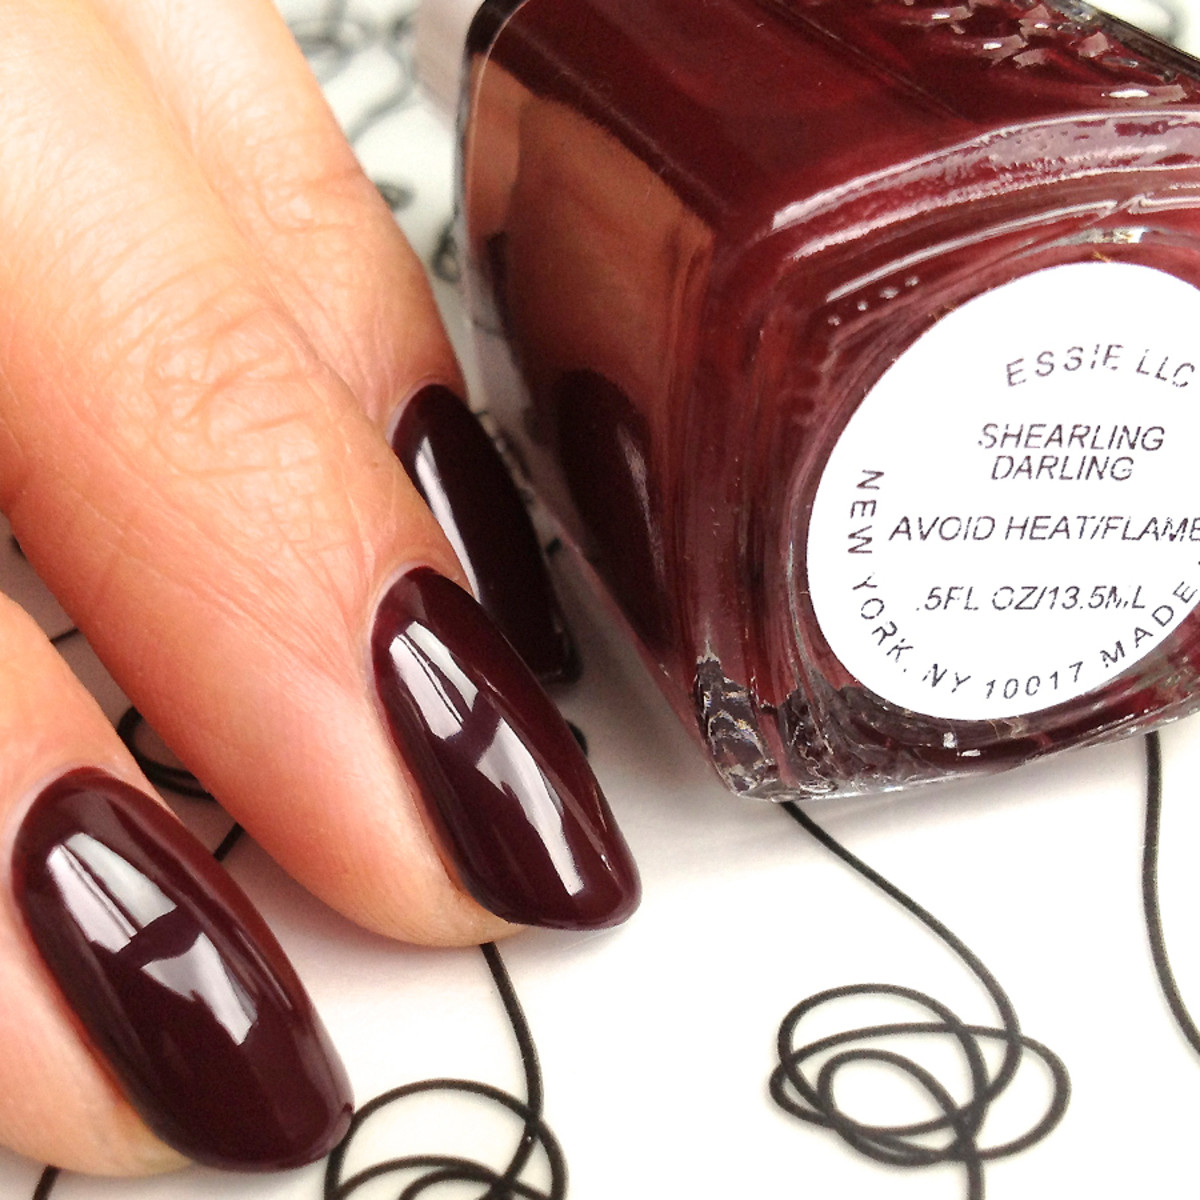 Essie Shearling Darling winter 2013